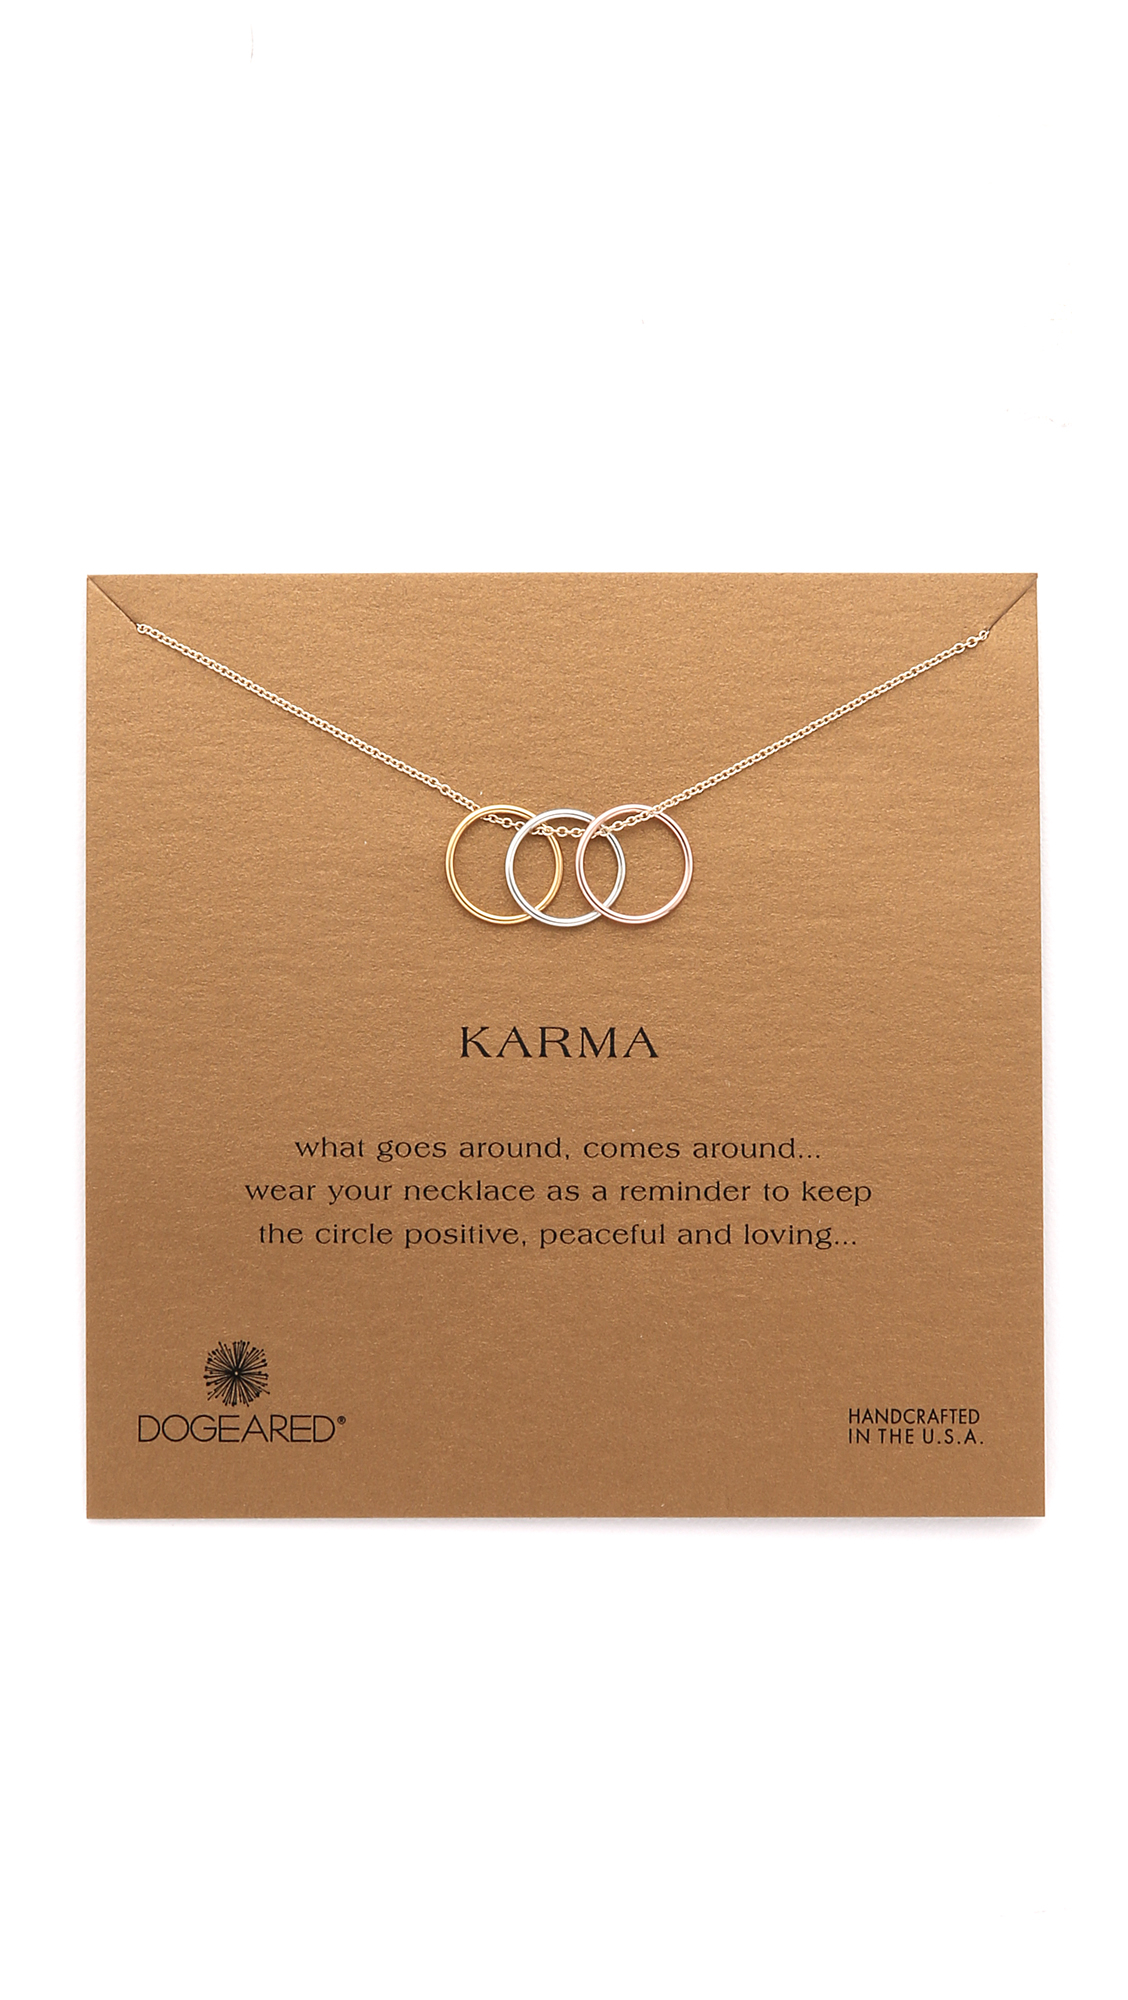 Dogeared Triple Karma Ring Necklace - Silver/rose Gold in Metallic